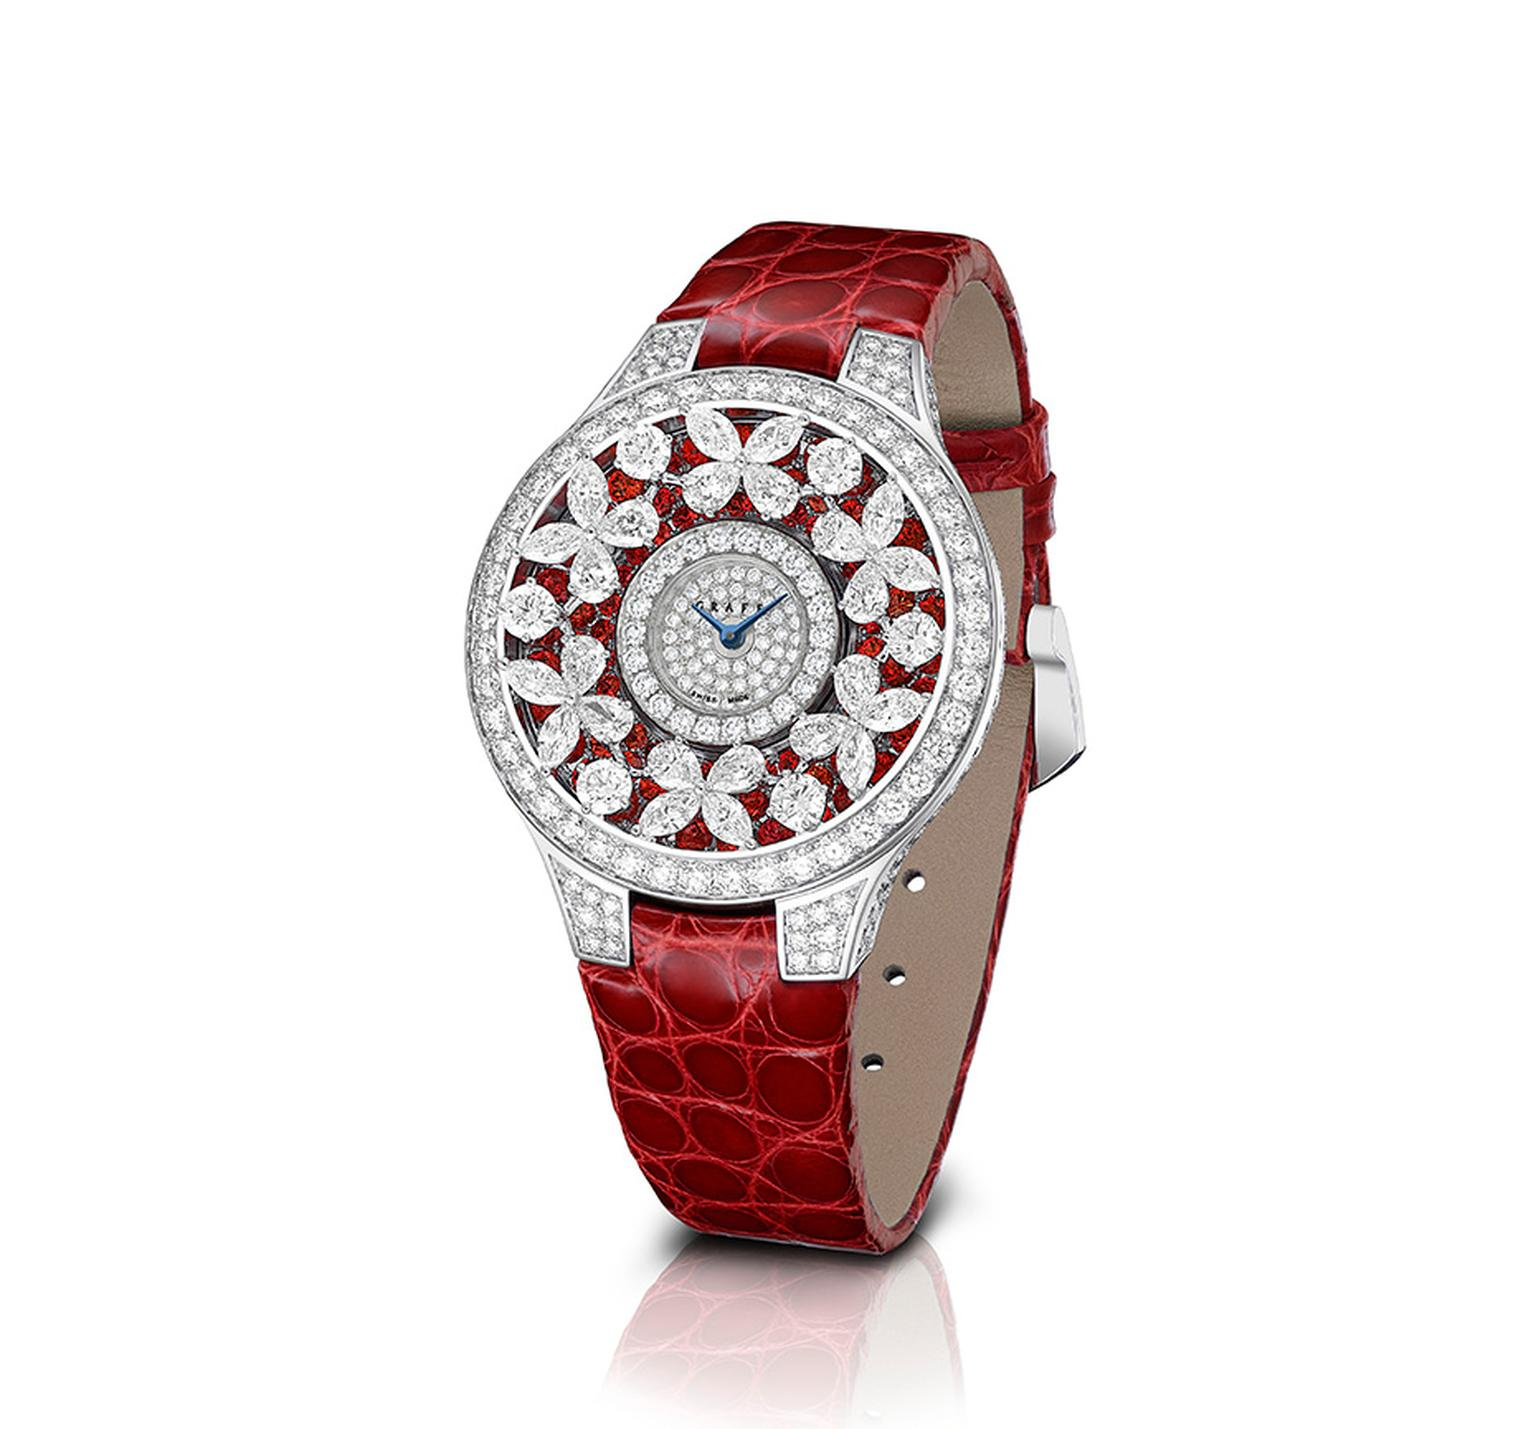 Graff Butterfly watch featuring diamonds and rubies.